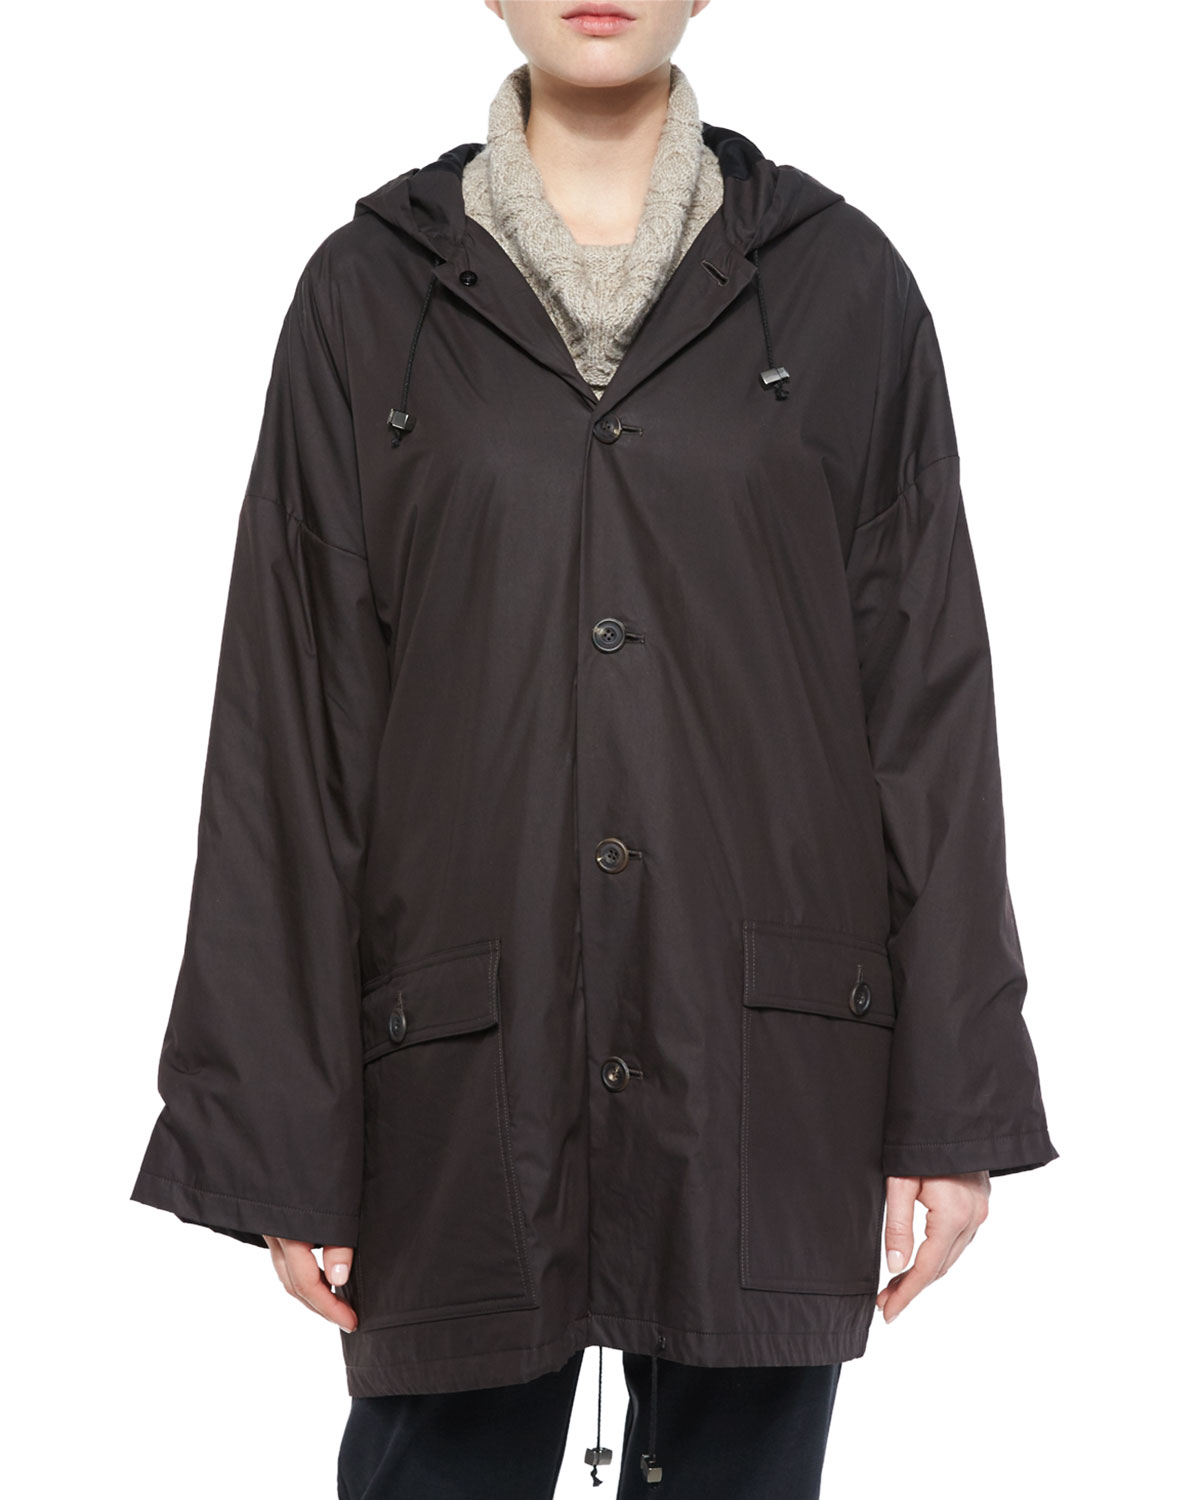 Hooded Lined Button Raincoat, Brown